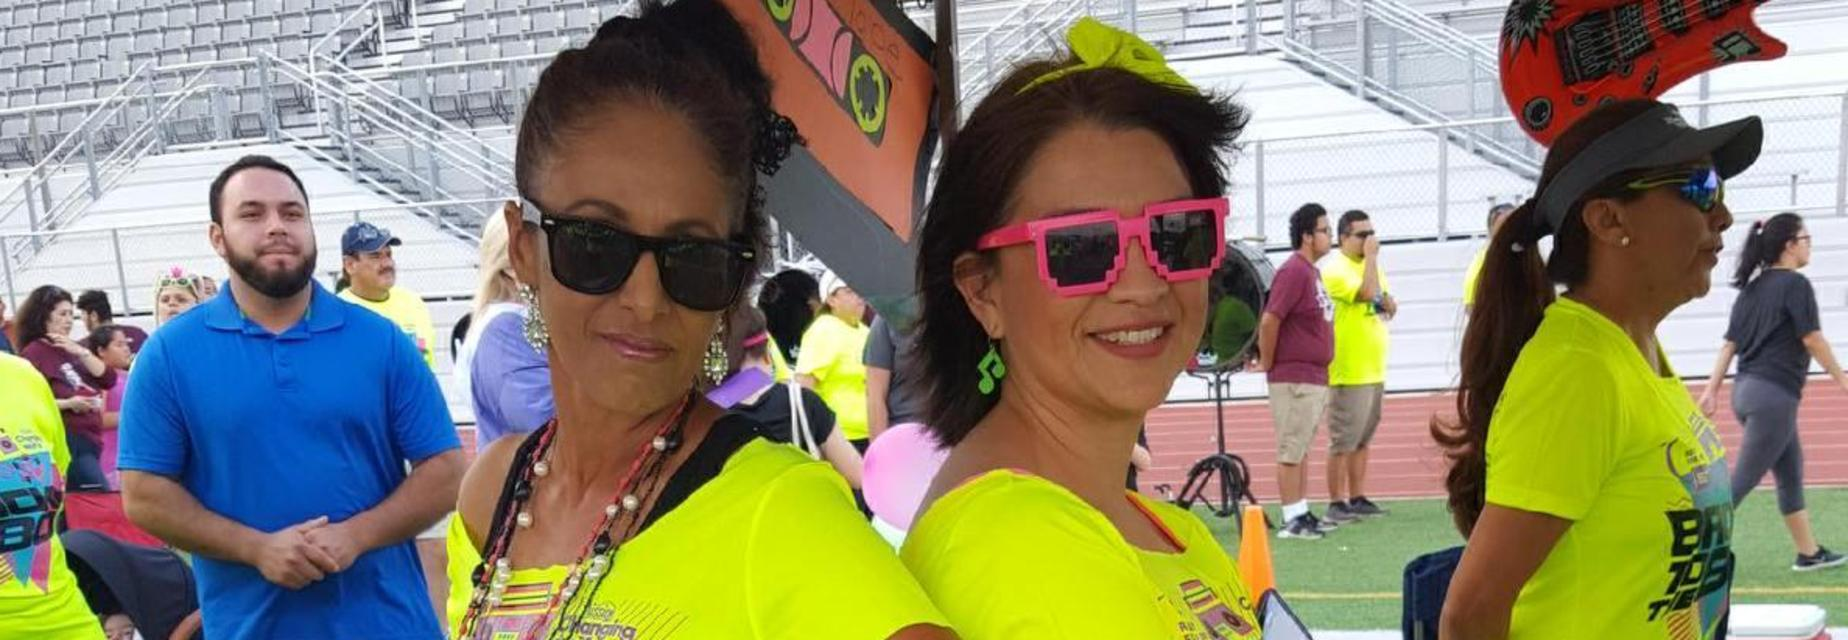 Staff dressed up for 80s theme at Relay for Life